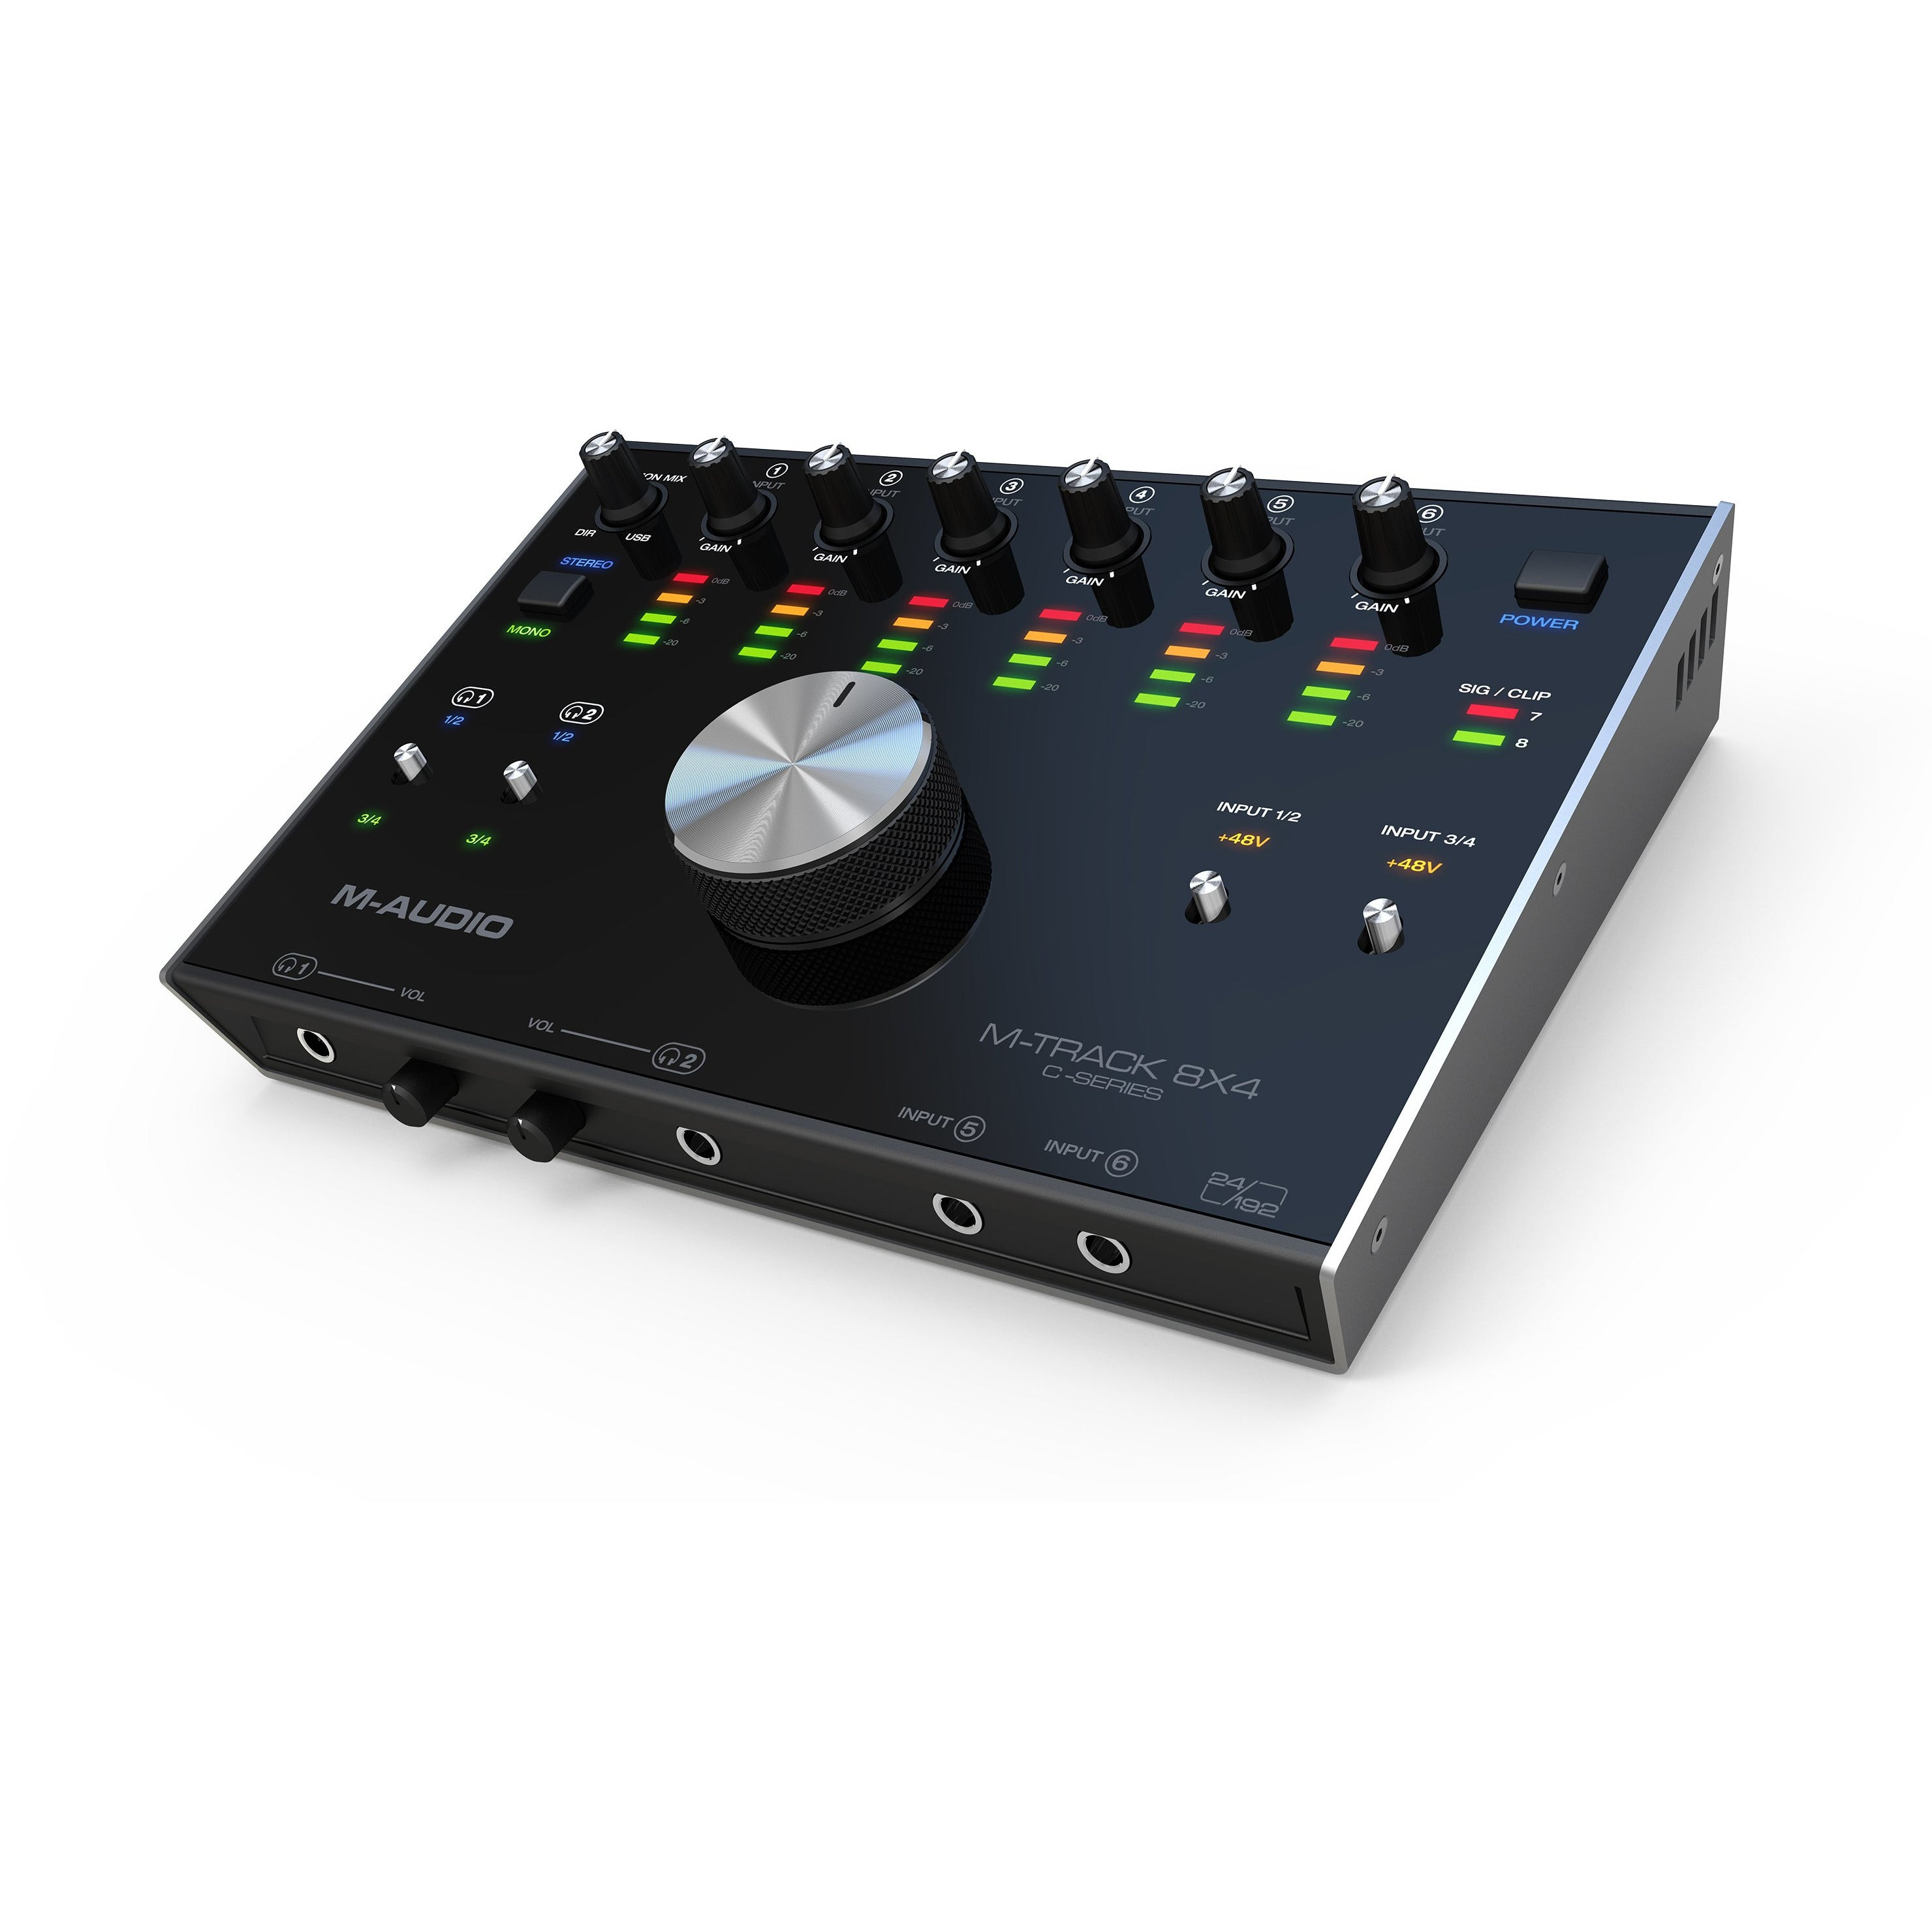 M-Audio M-Track 8X4M USB Audio interface